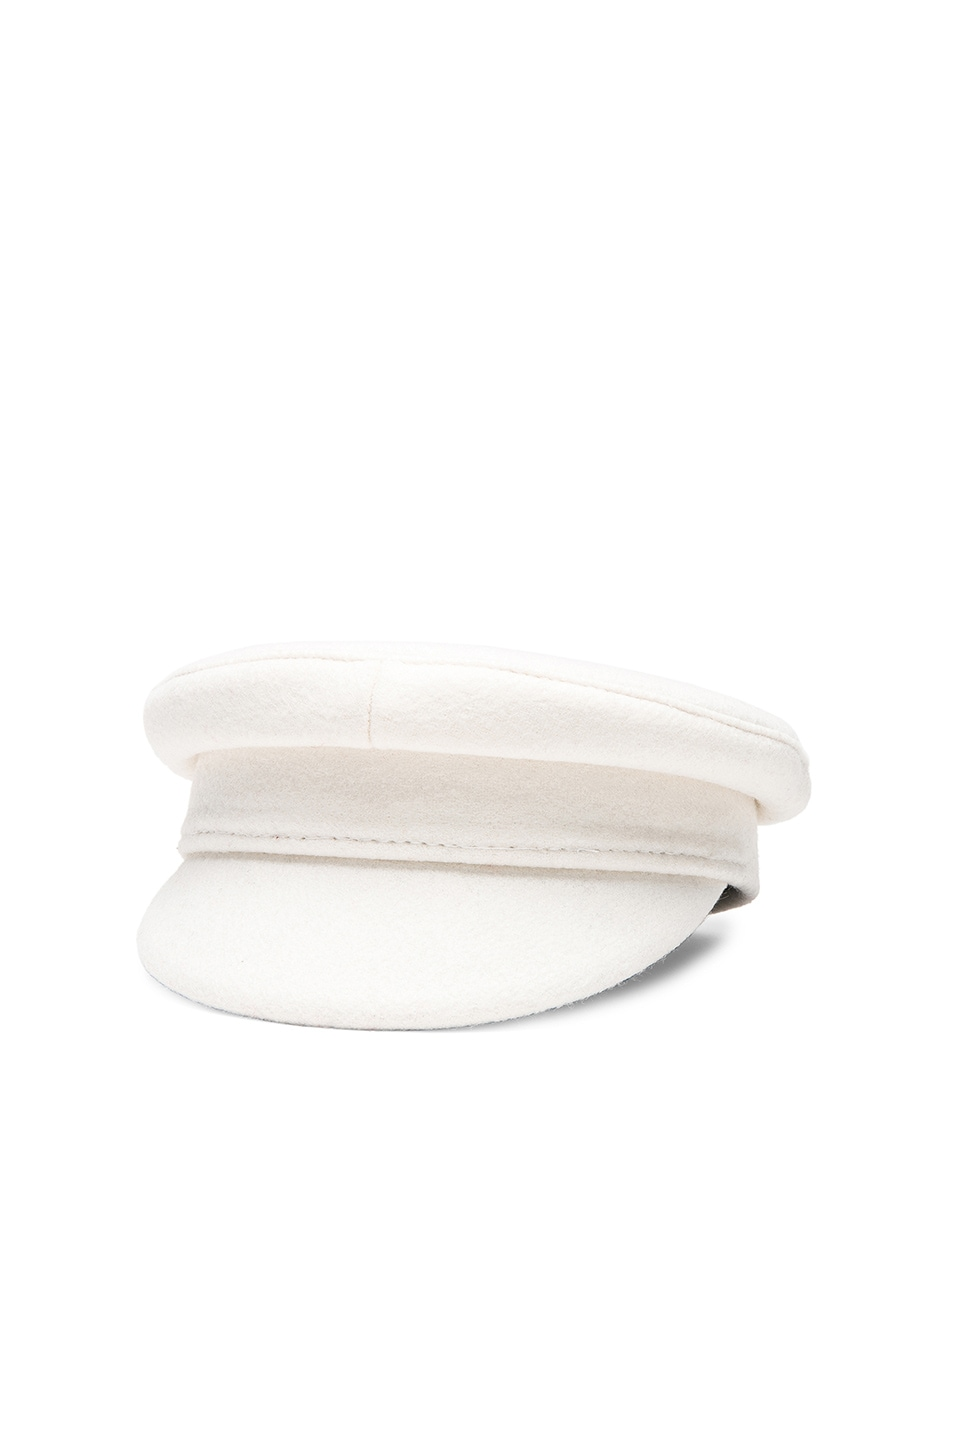 Image 2 of Ruslan Baginskiy Baker Boy Cap in White